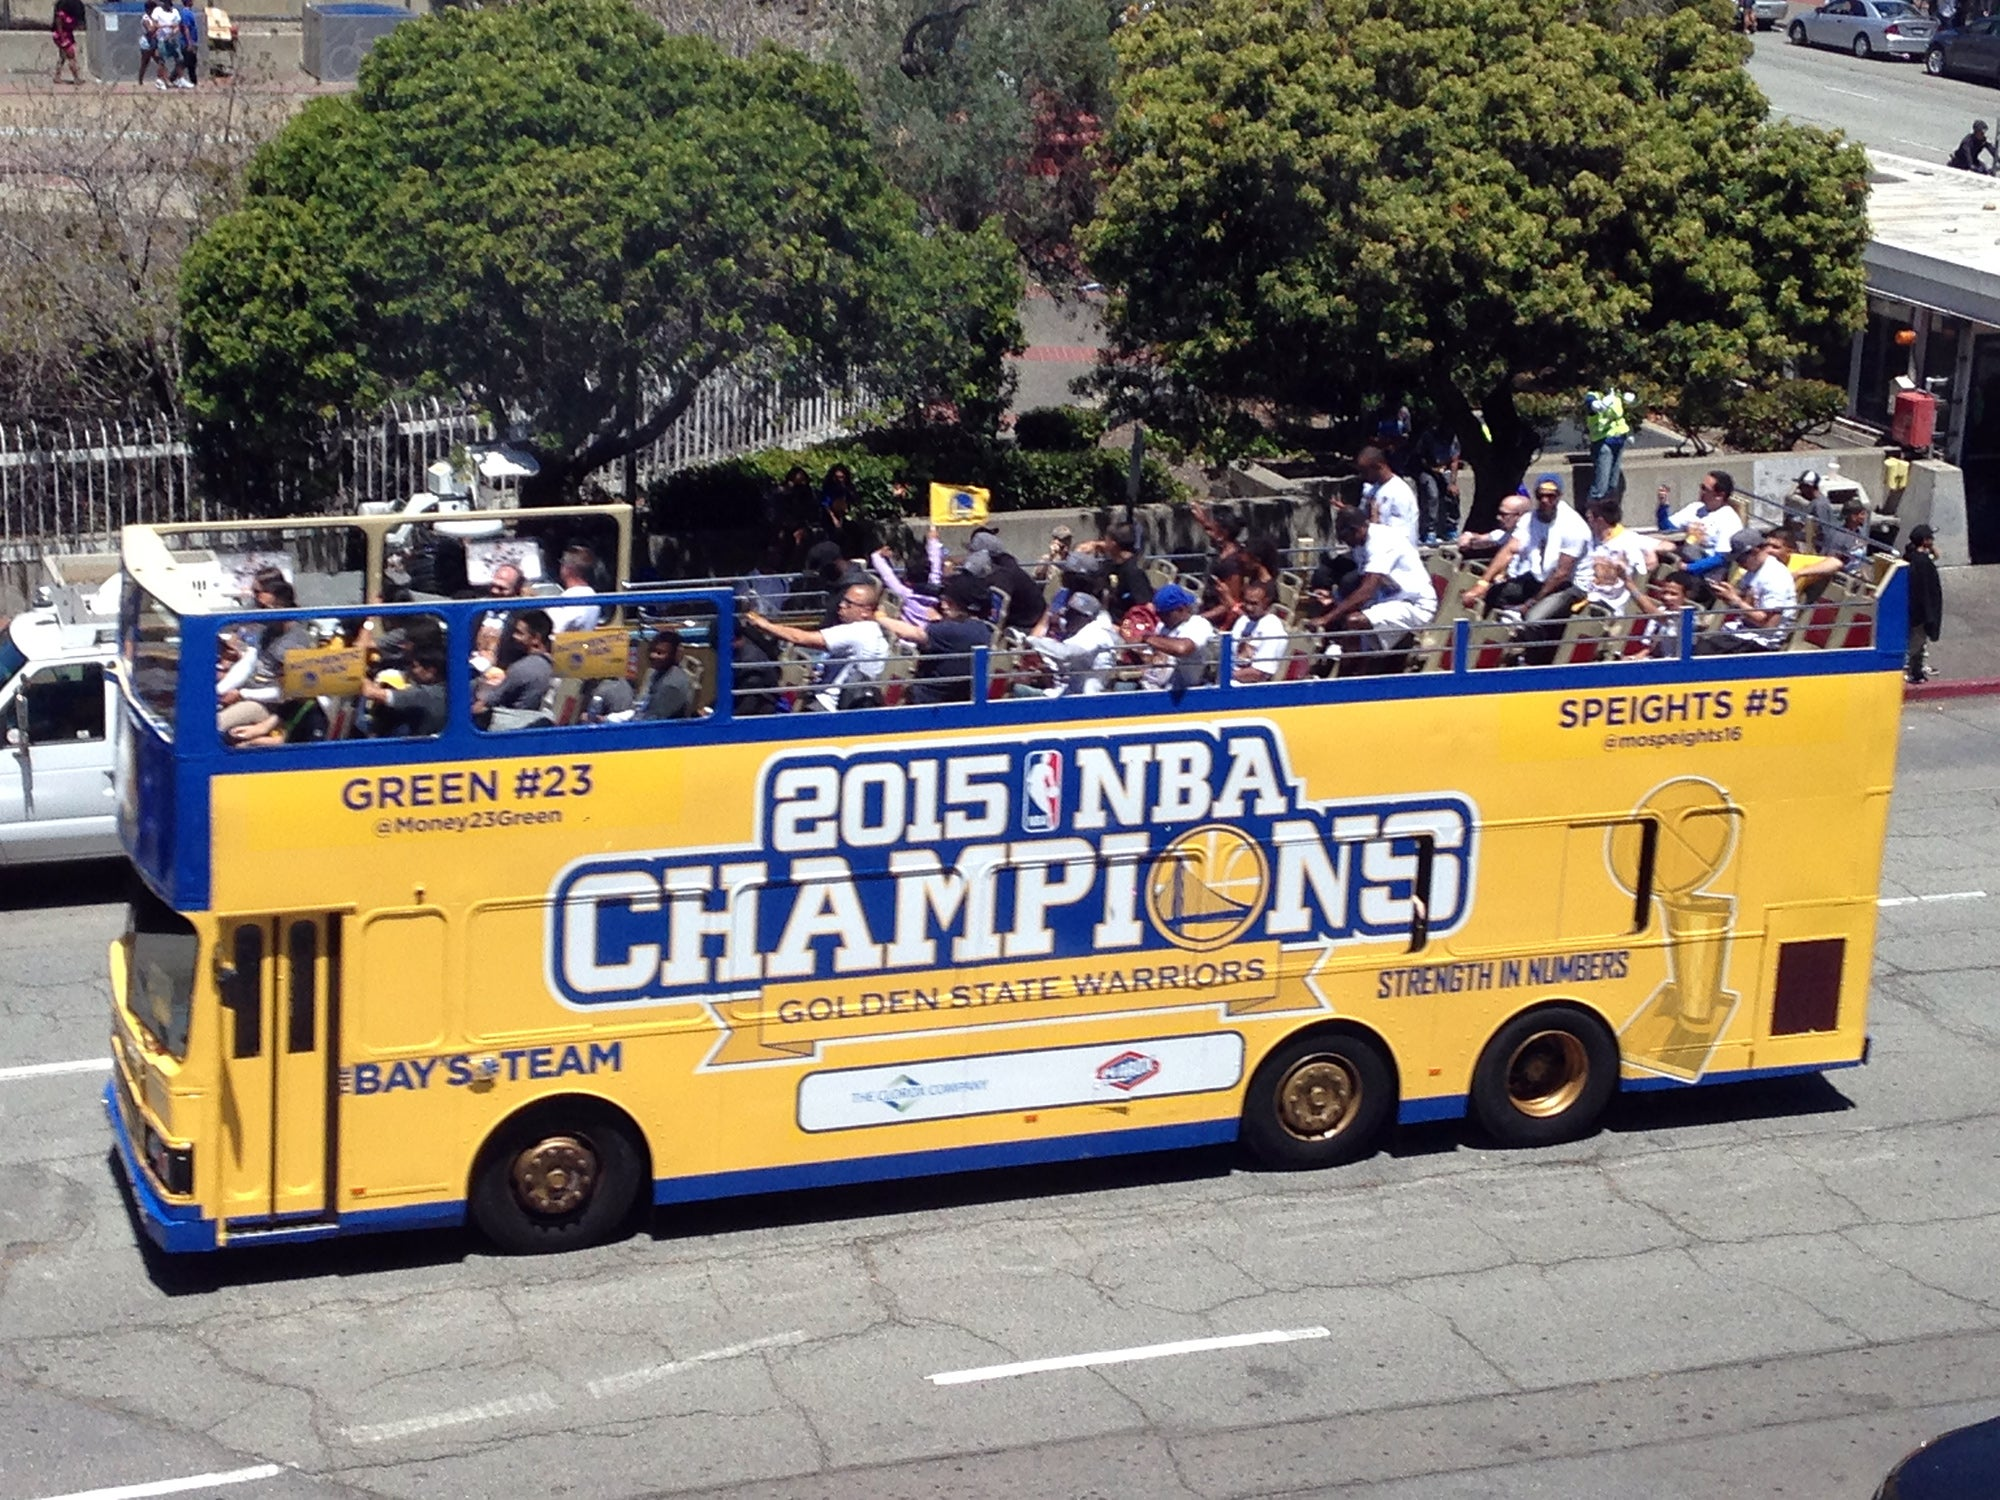 Post-rally, the procession of floats and buses made its way past the MetroCenter, sans the Warriors' players who were the focal point of the parade earlier in the day.